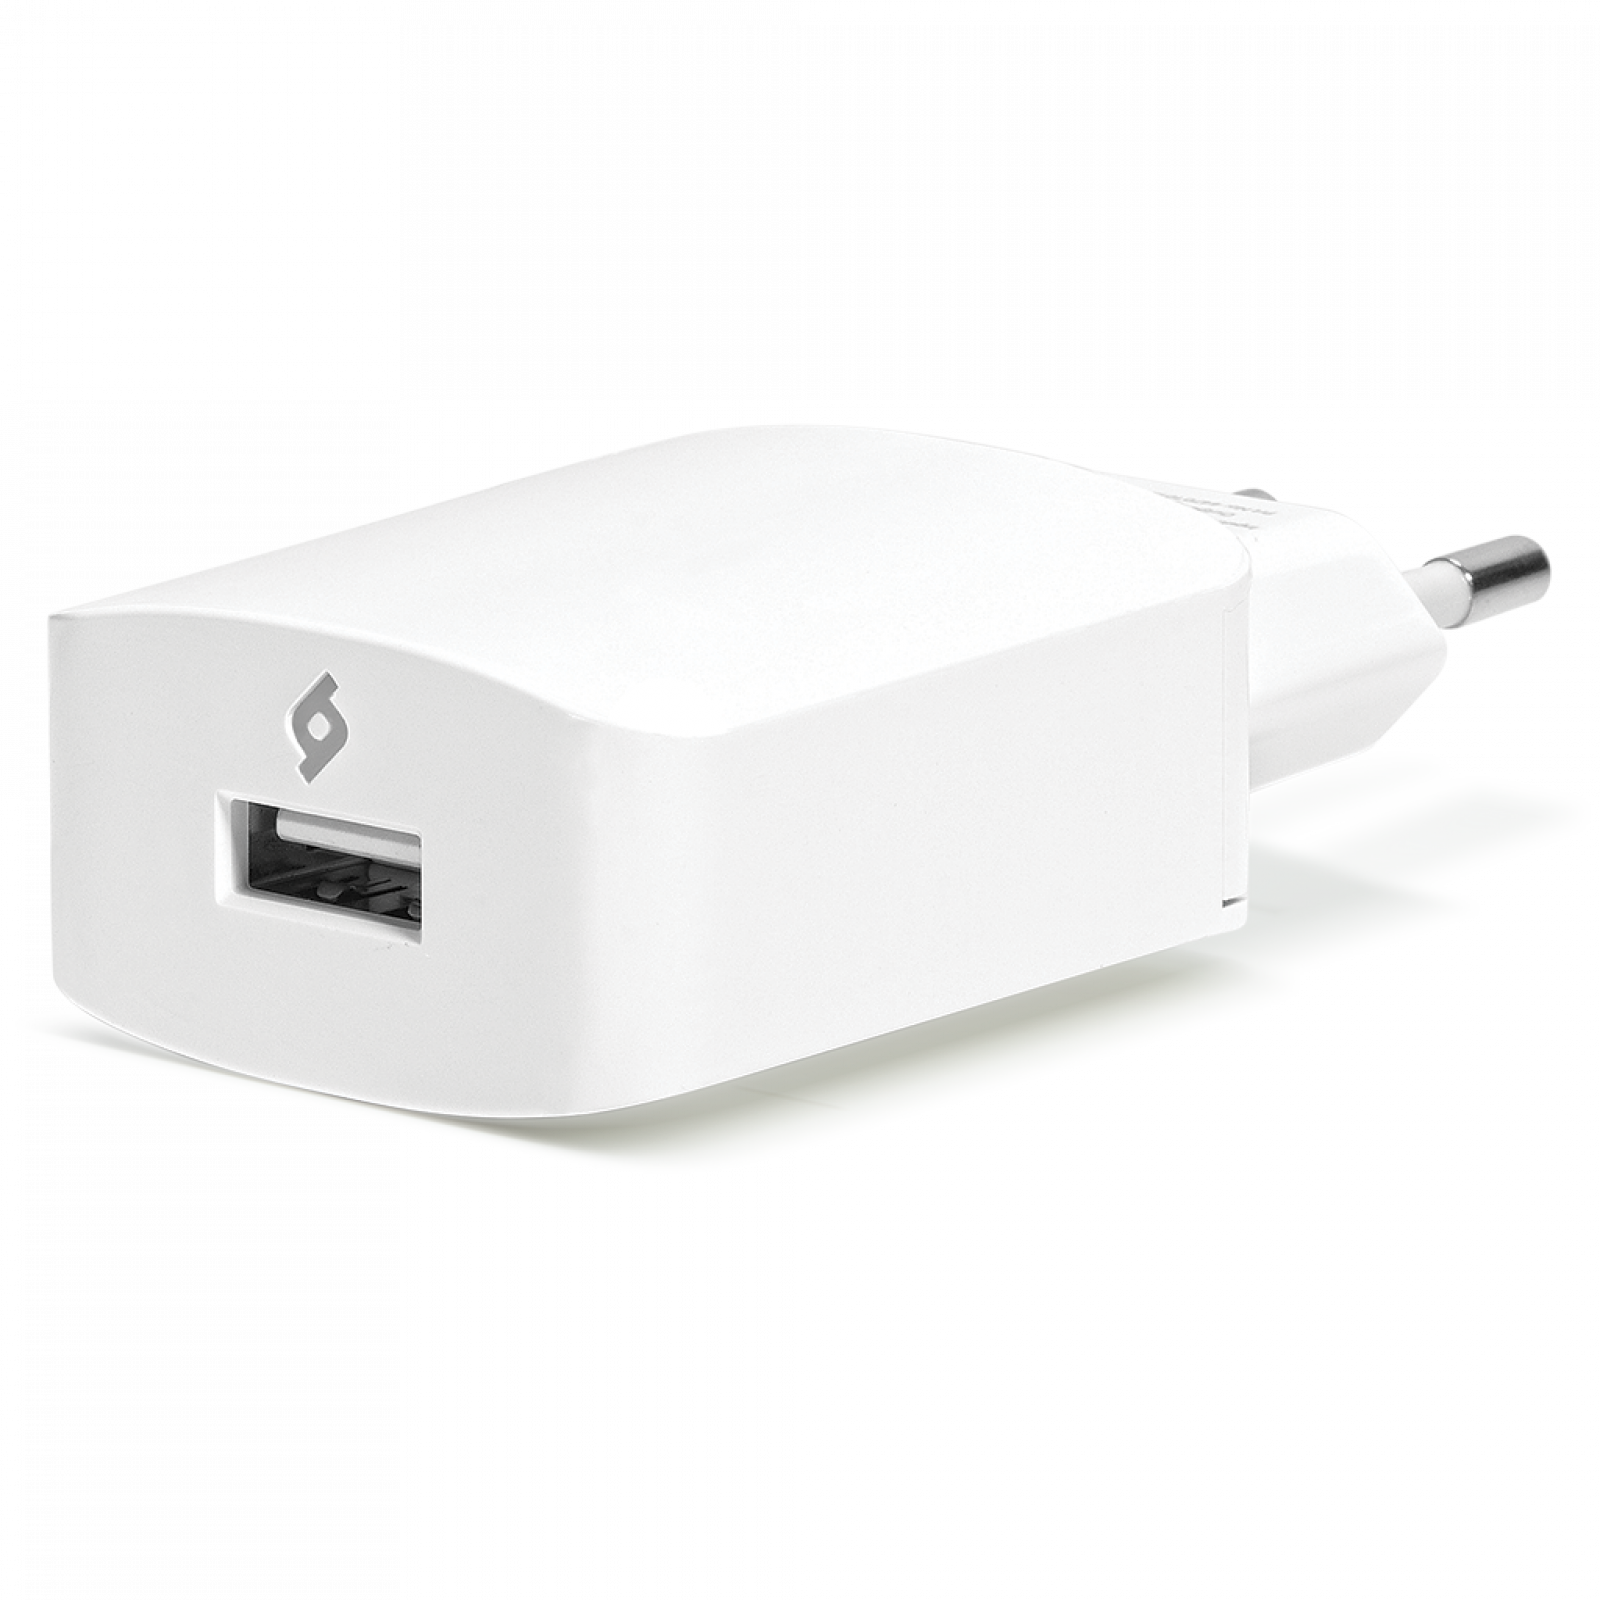 Зарядно 220V SpeedCharger USB Travel Charger, 2.1A, incl, Type C  Cable - Бяло,115573